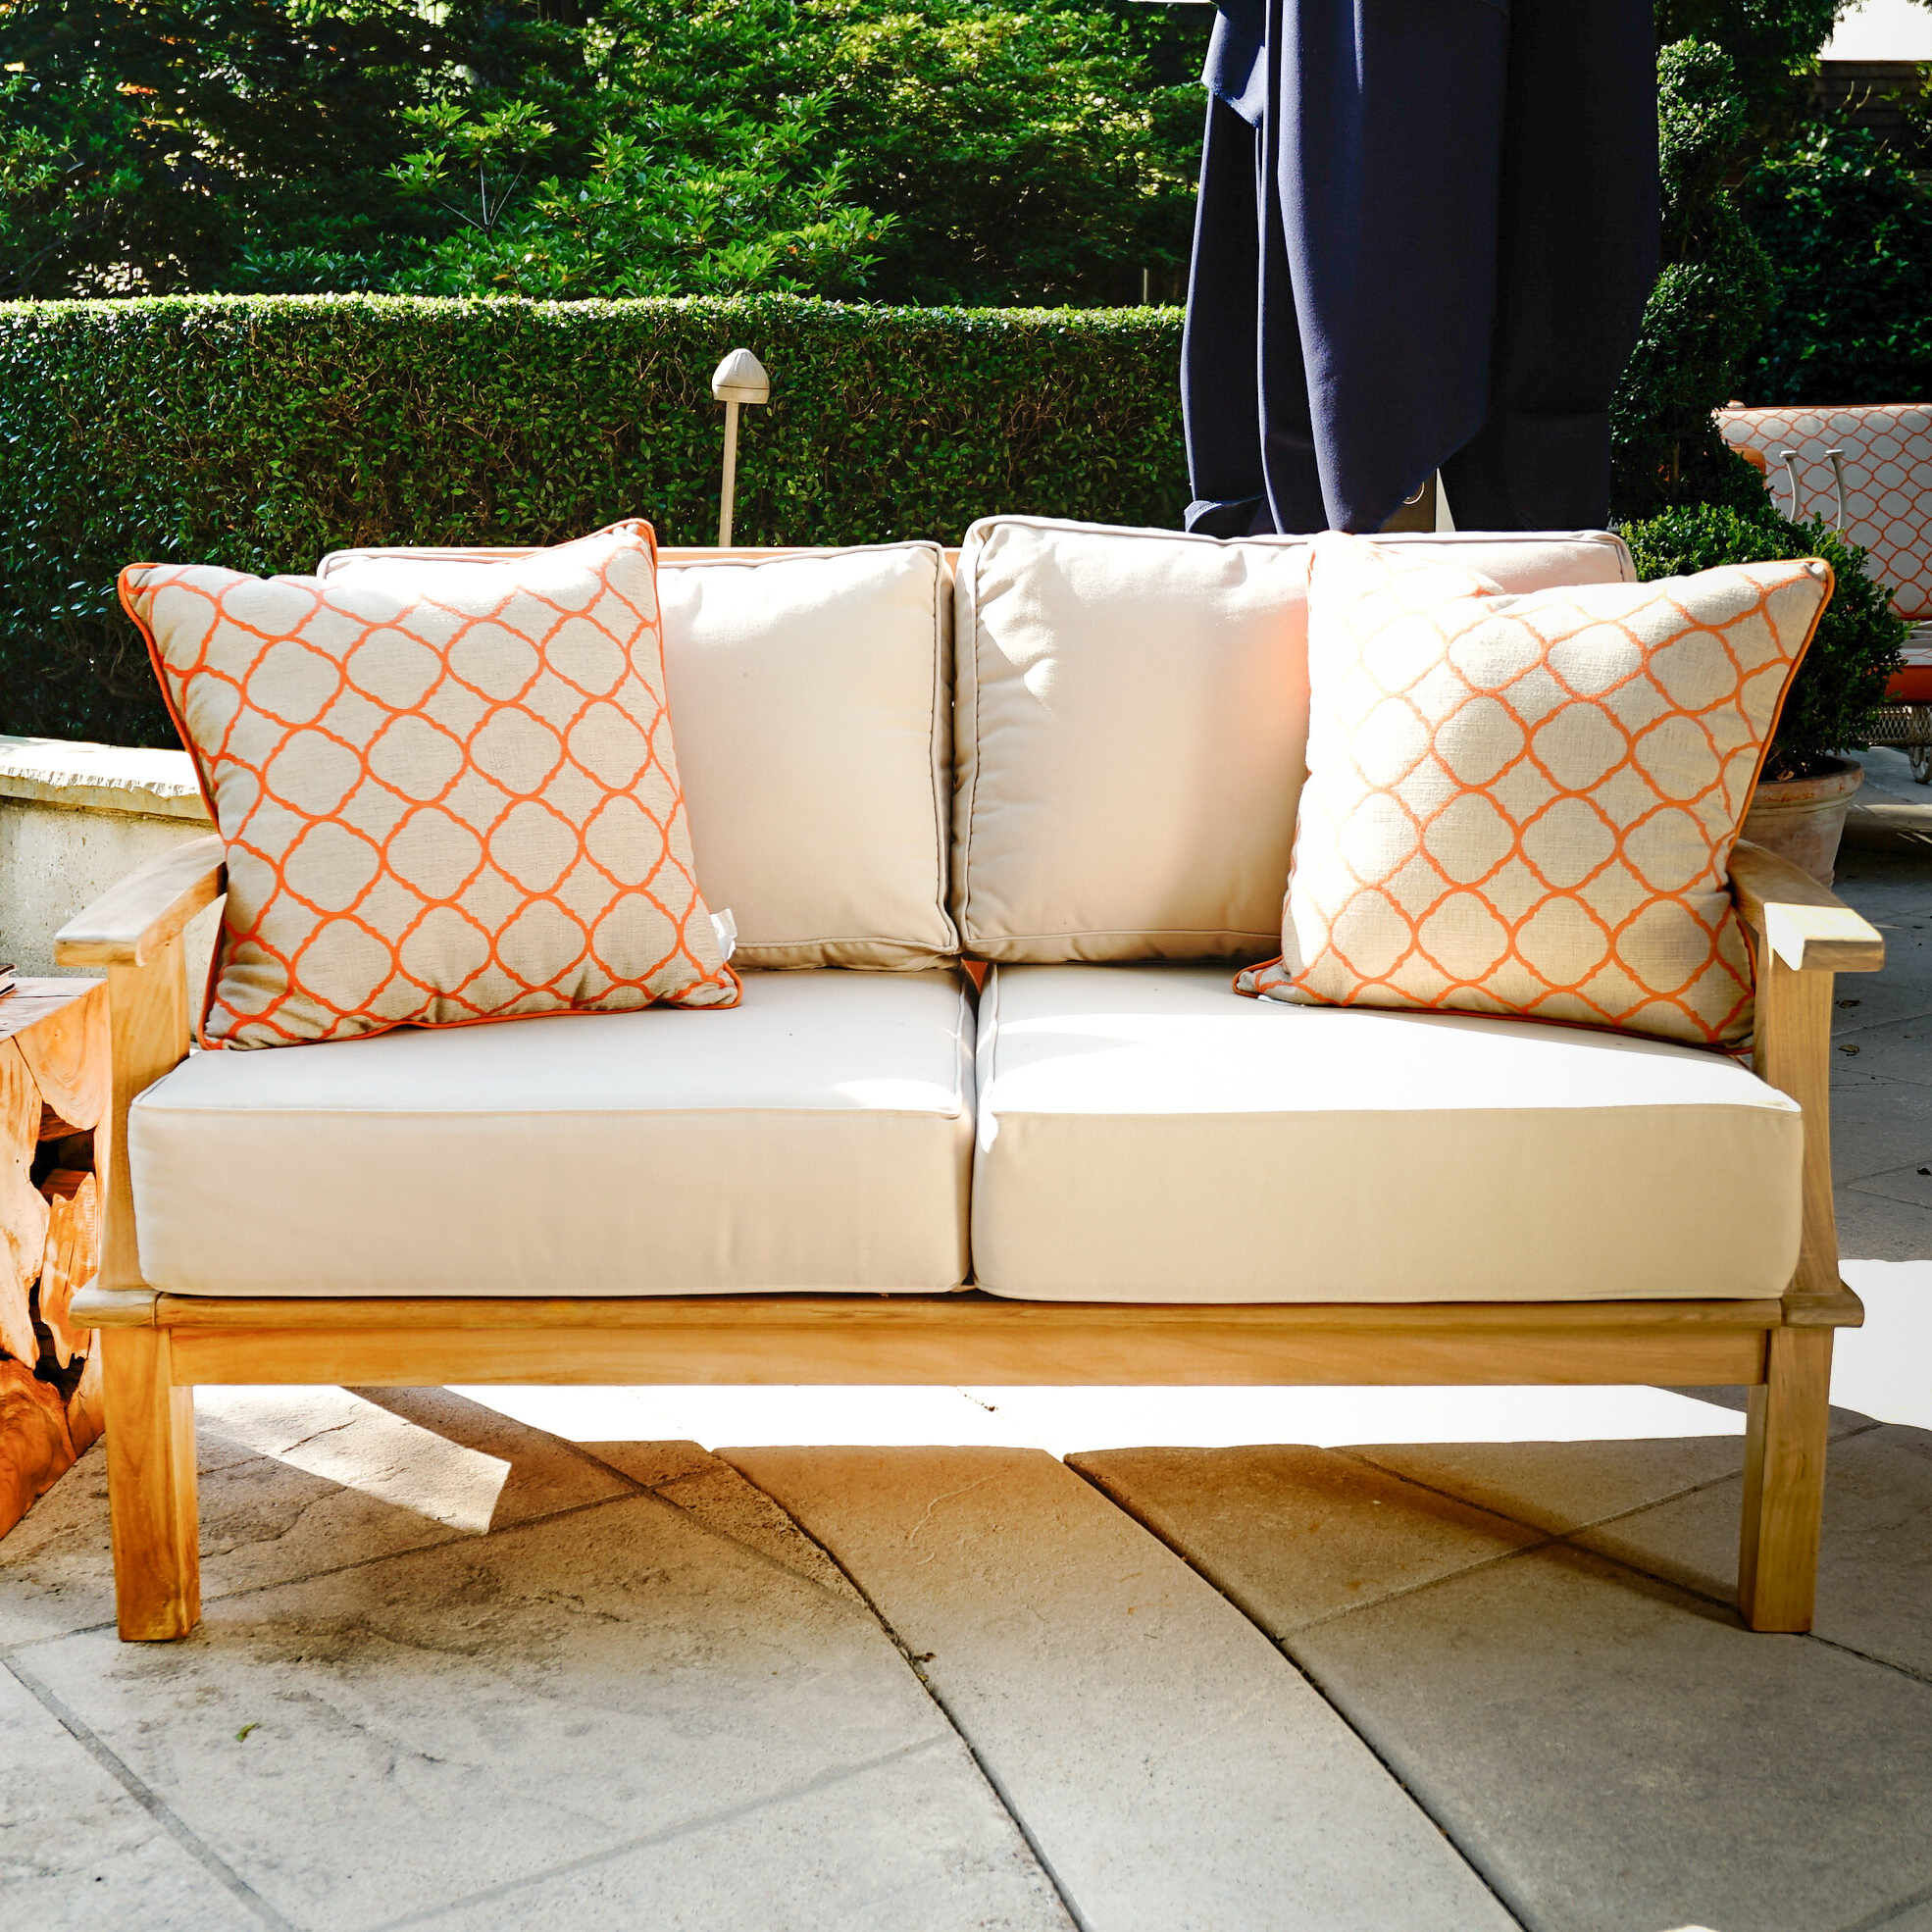 Popular Galvan Outdoor Teak Loveseat With Cushion Regarding Mansfield Teak Loveseats With Cushion (Gallery 4 of 20)